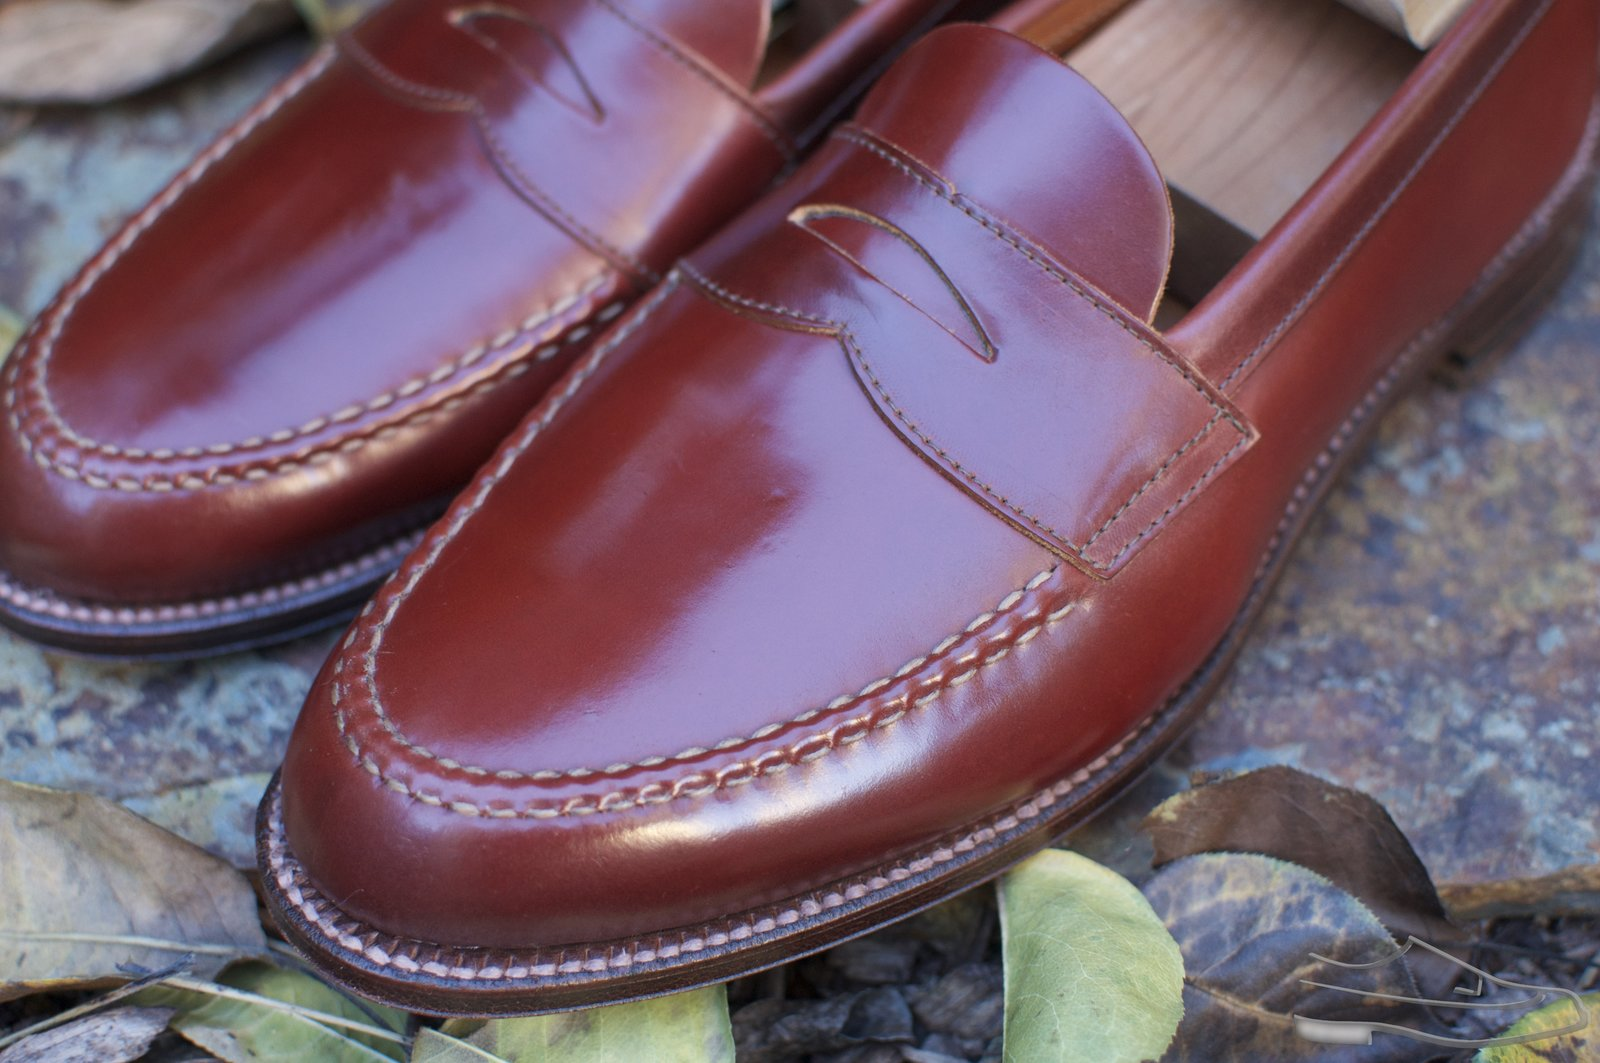 Alden Color #2 Unlined Shell Cordovan LHS - 2020-11-29 - 2.jpg